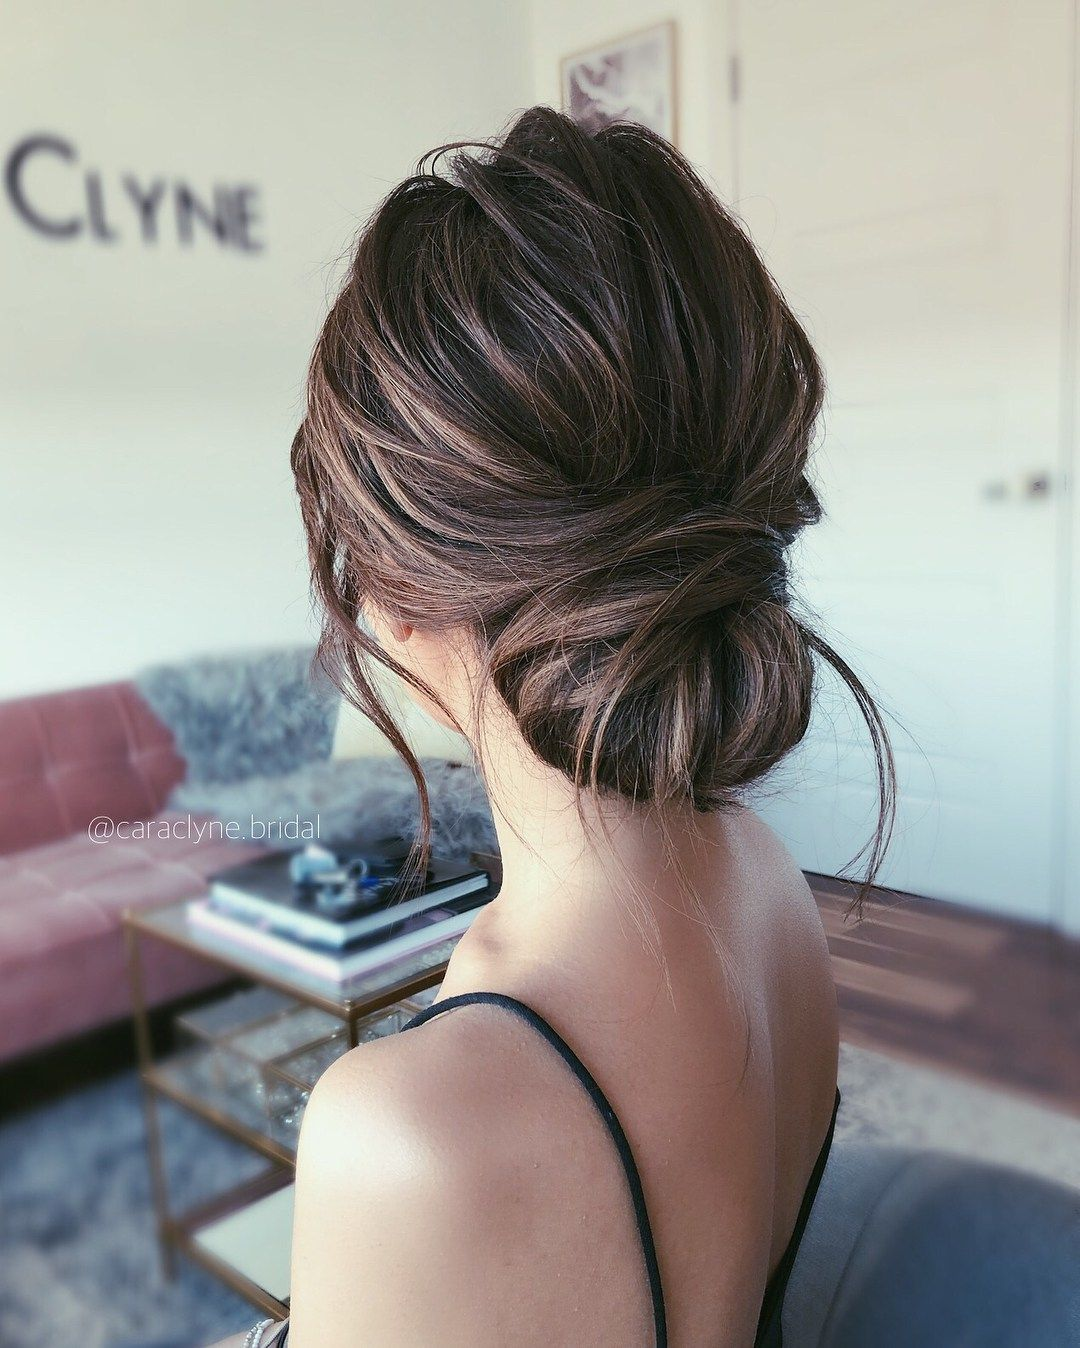 The updo twisted pictures